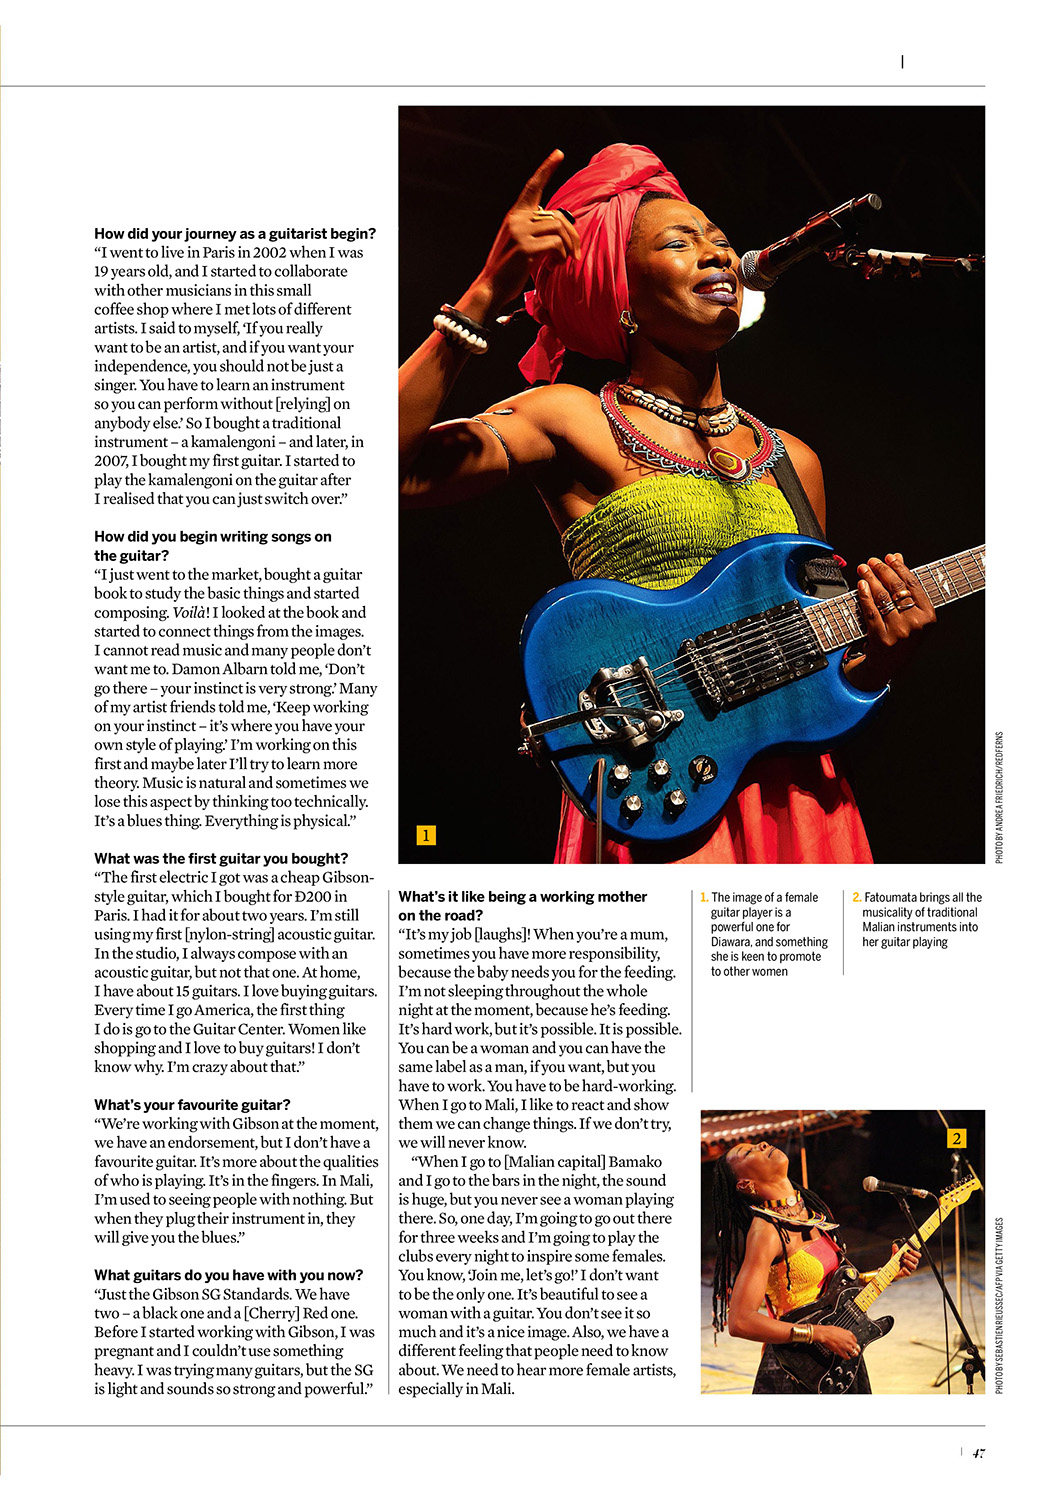 Fatoumata Diawara Photography Adam Gasson